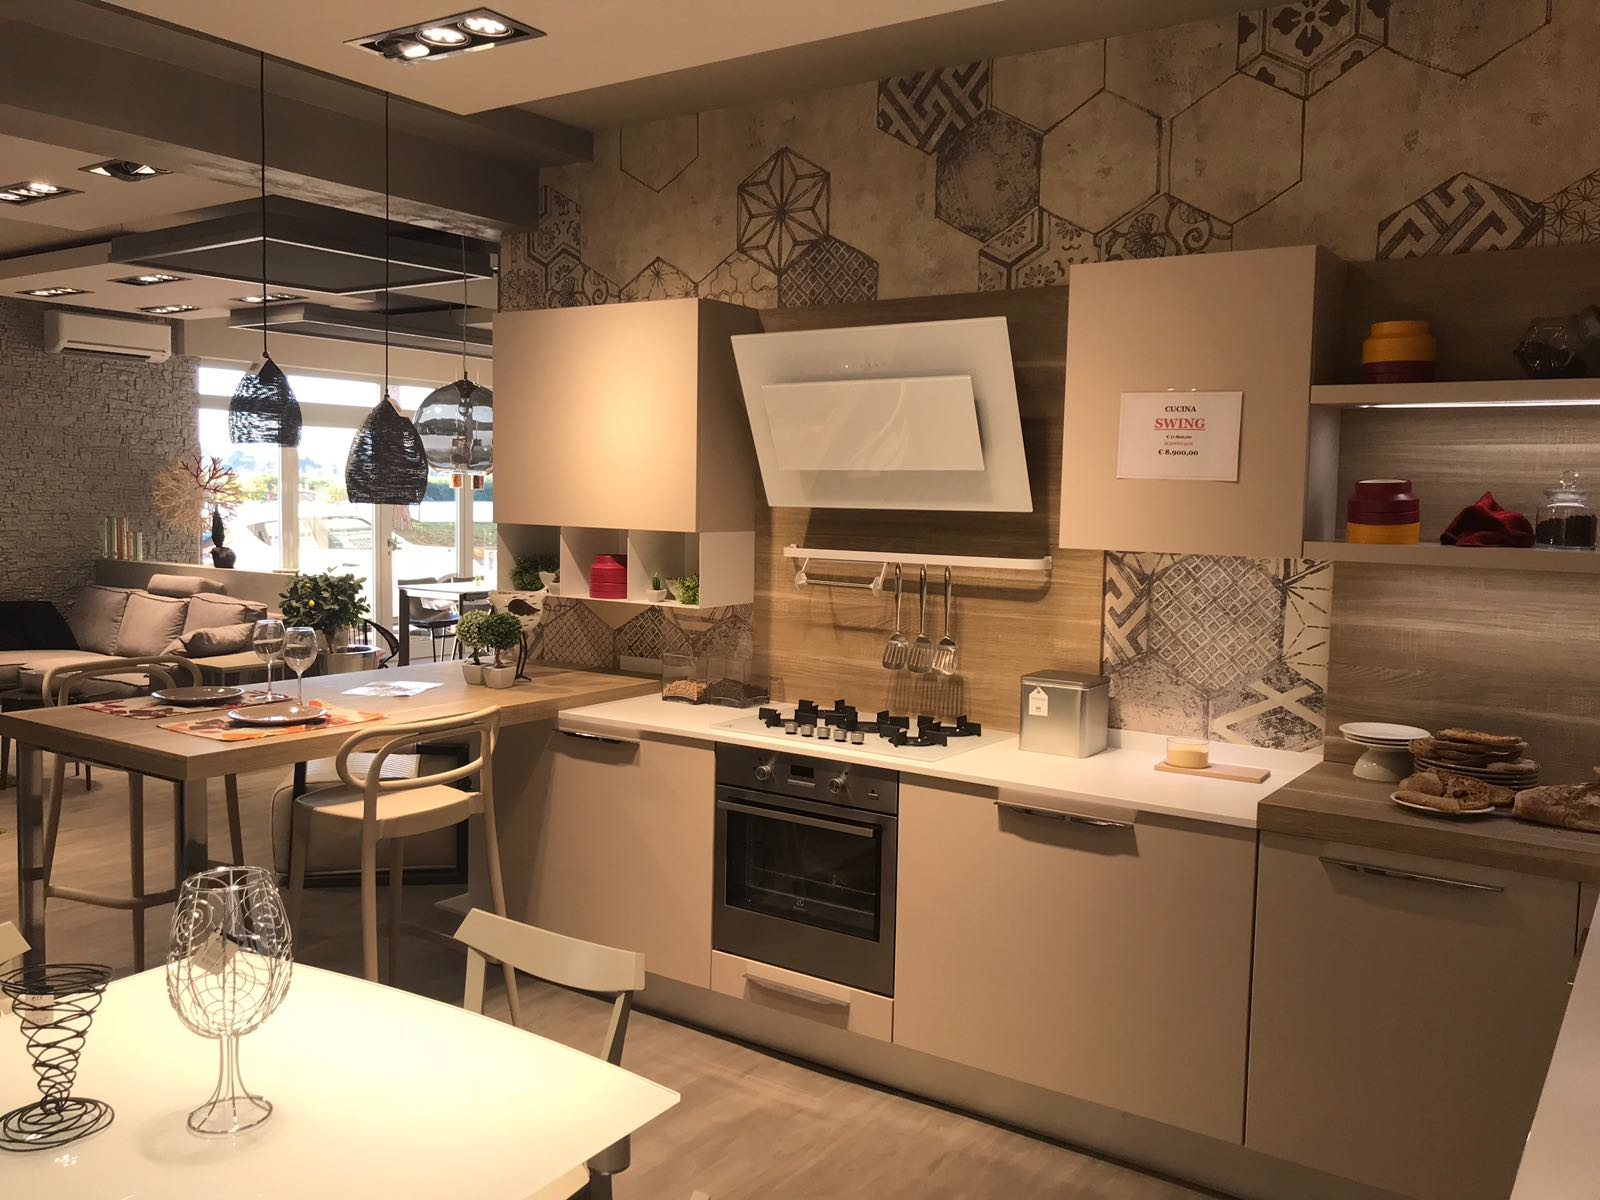 Creo kitchen prezzi cucine creo cucine lube and the new brand creo kitchens together in a new - Cucina lube nita ...